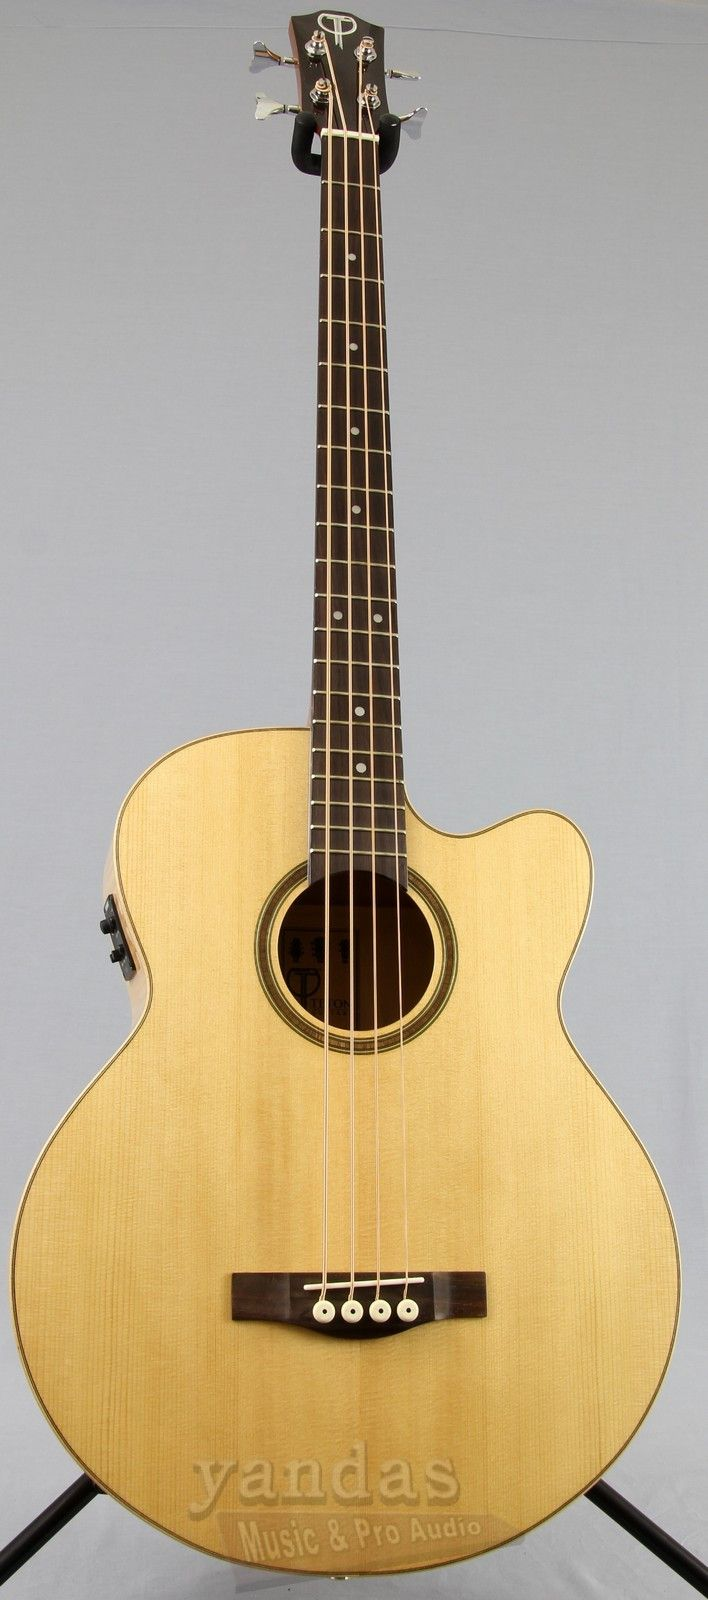 The Teton STB130FMCENT features a solid spruce top that helps produce beautiful bass cutting through dense acoustic mixes. With it's stunning flame maple back and sides and Mahogany neck, this acousti